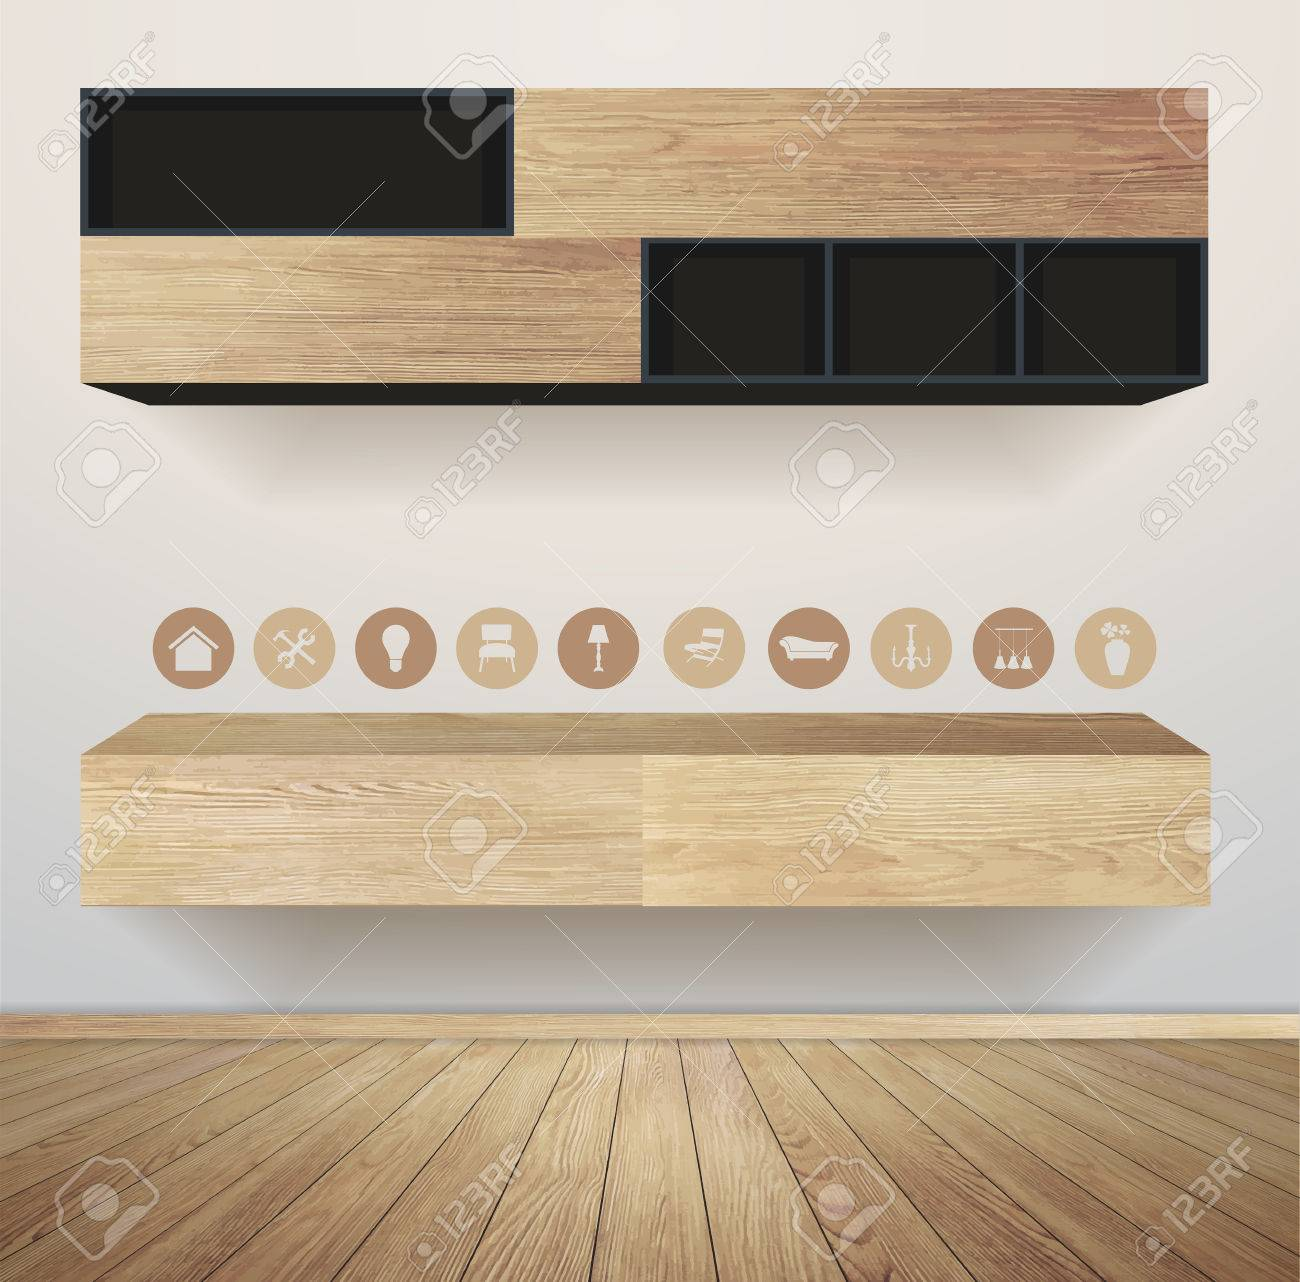 Interior wooden shelves free vector - Living Room Interior With Furniture Flat Icons Vector Illustration Modern Template Design Stock Vector